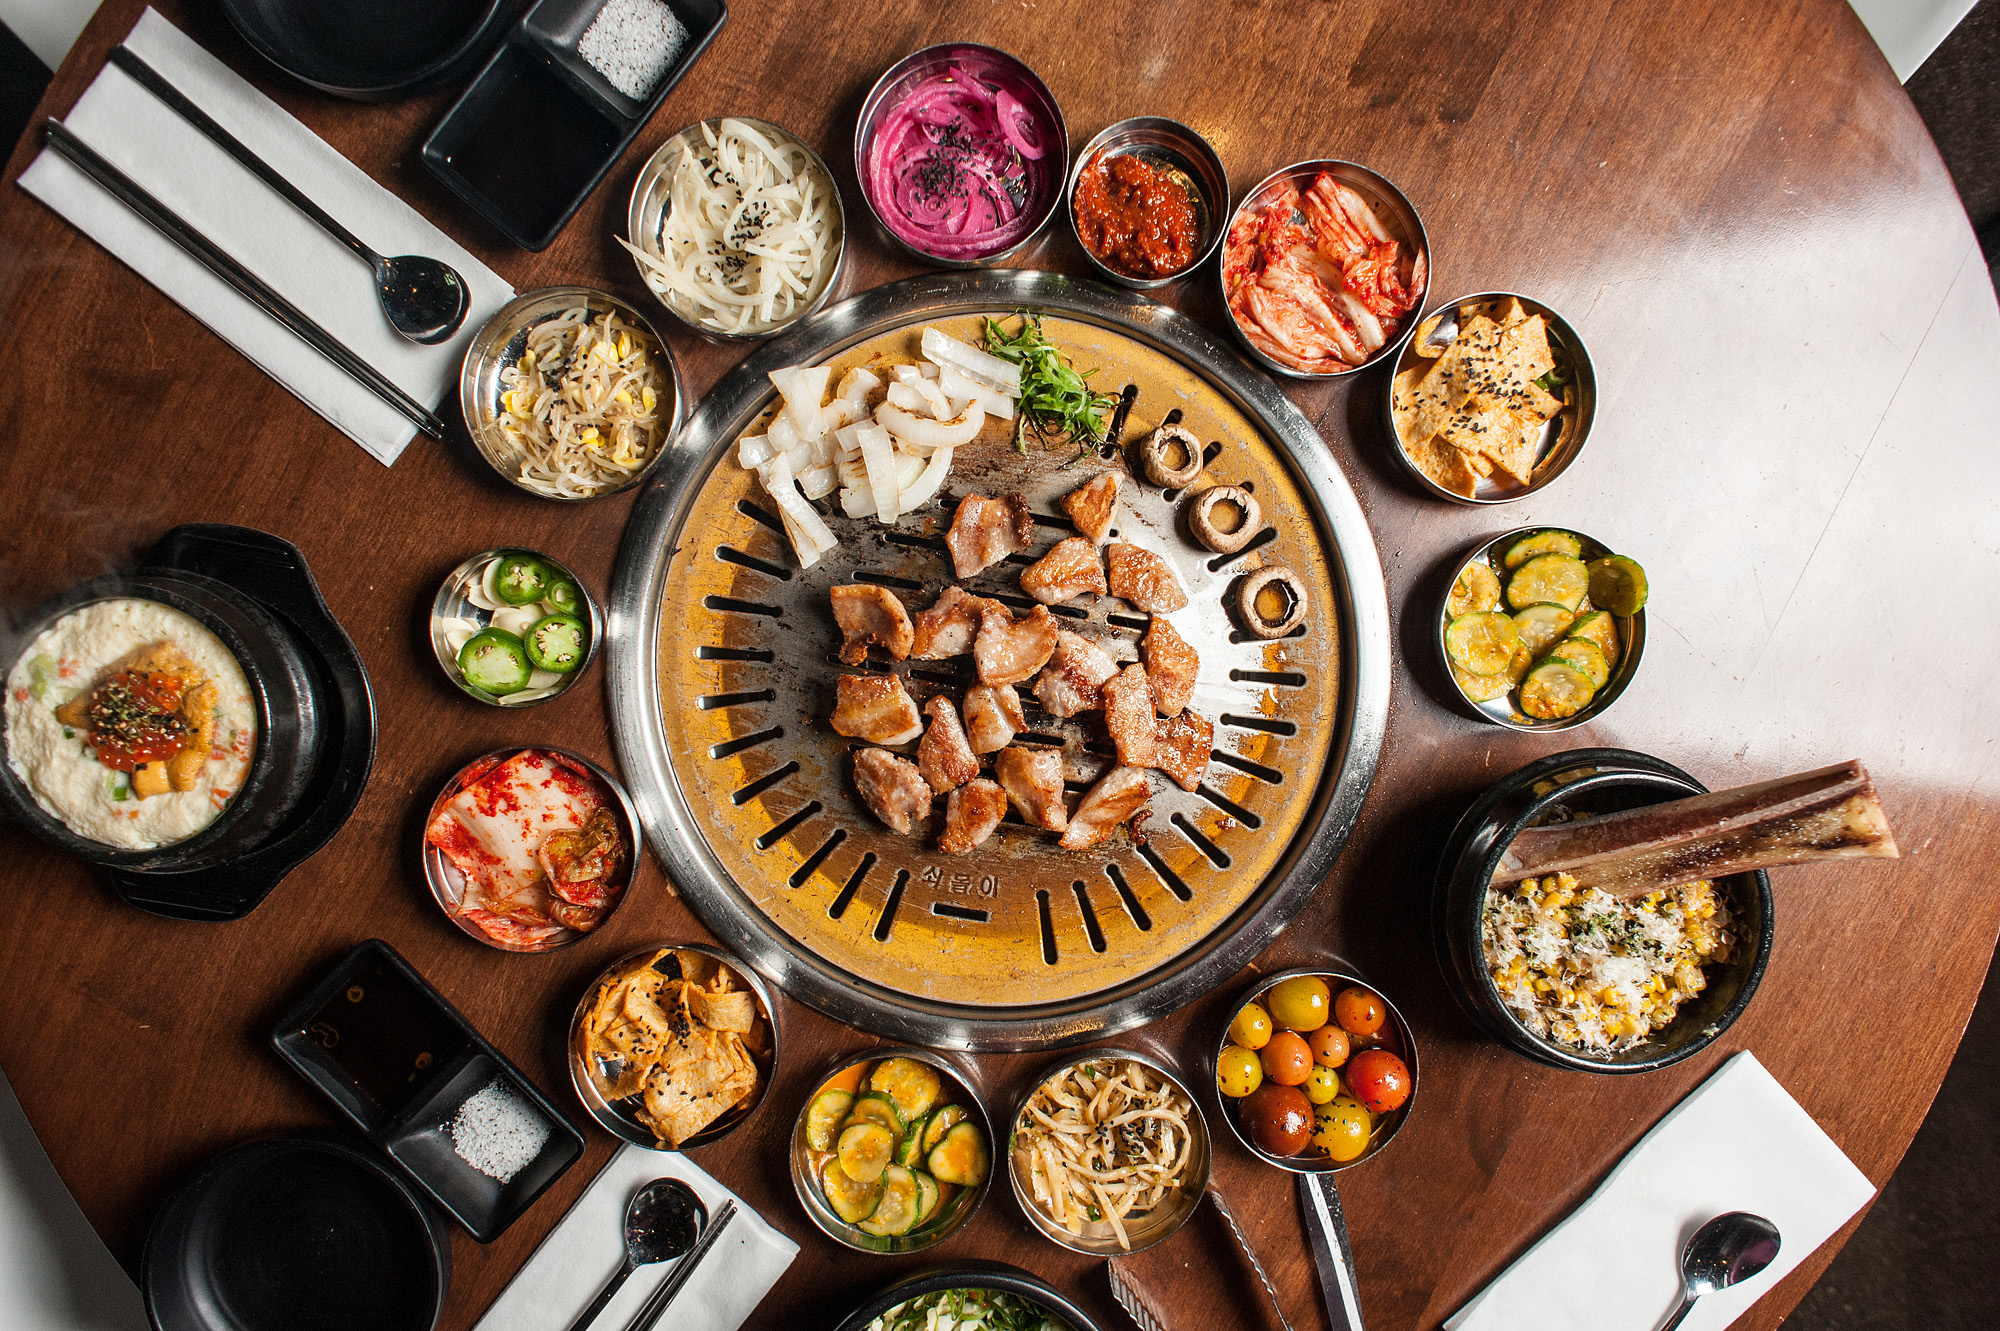 Bring Your Fat Pants: Here's How to Win Free Korean BBQ for a Year